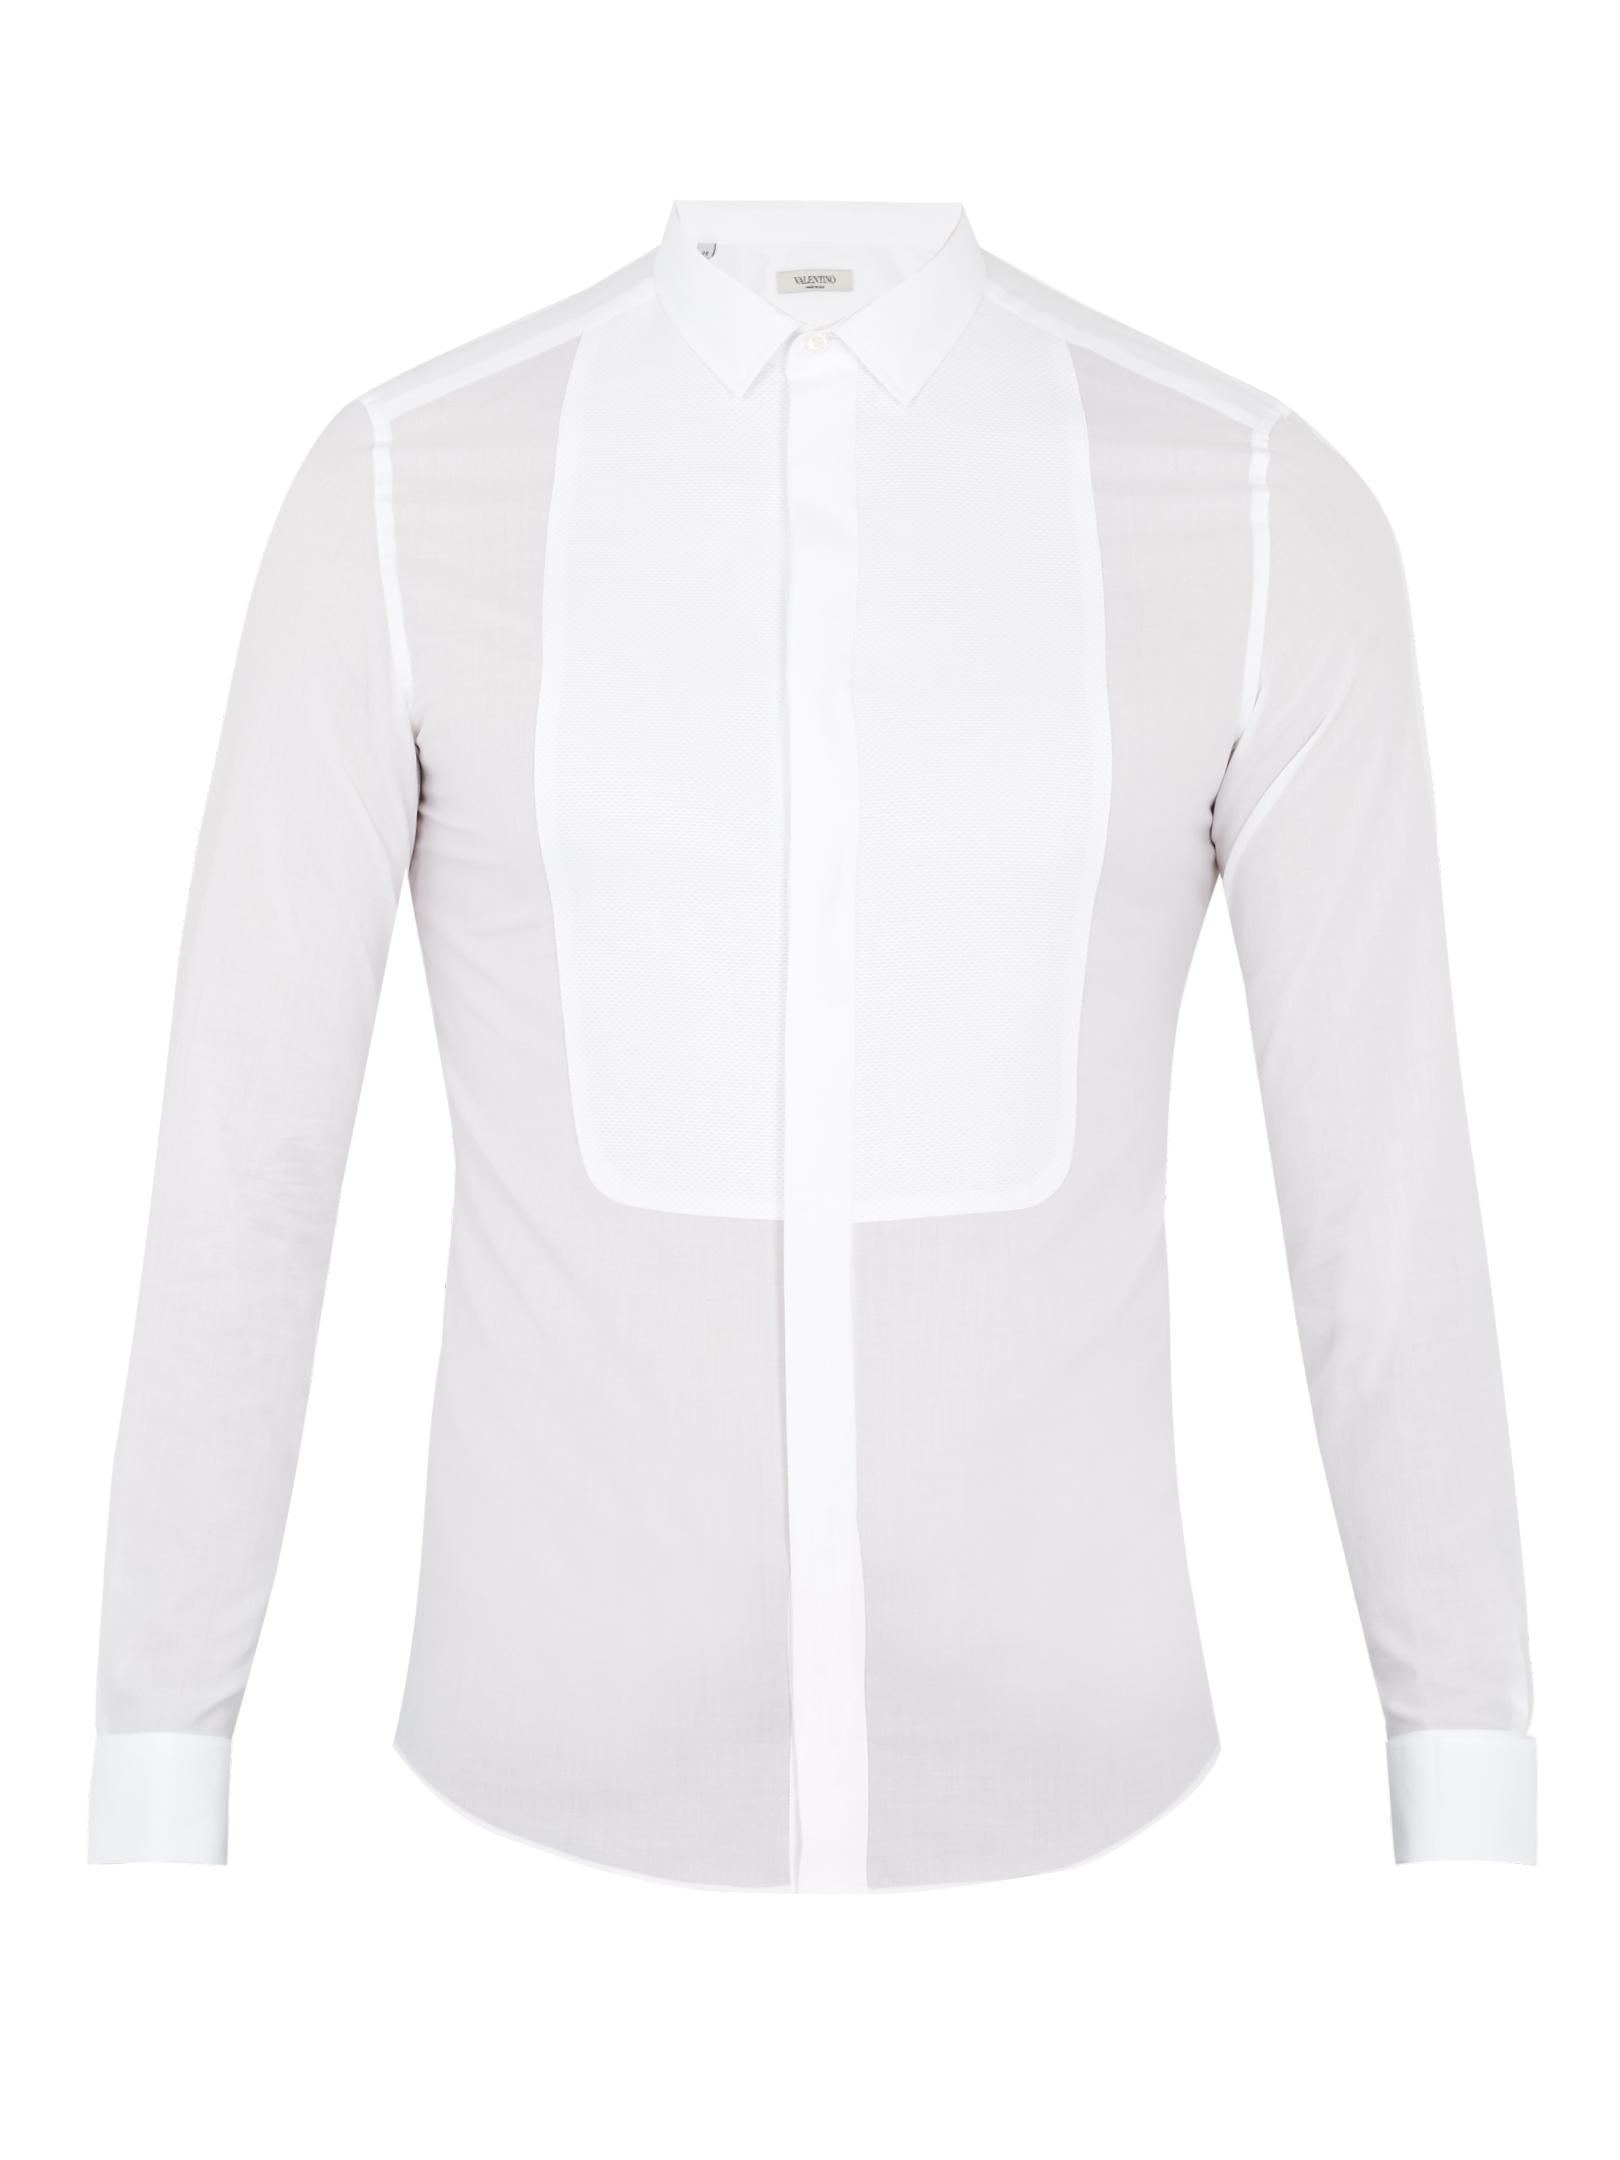 Valentino. Men's White Double-cuff Bib-front Cotton Shirt